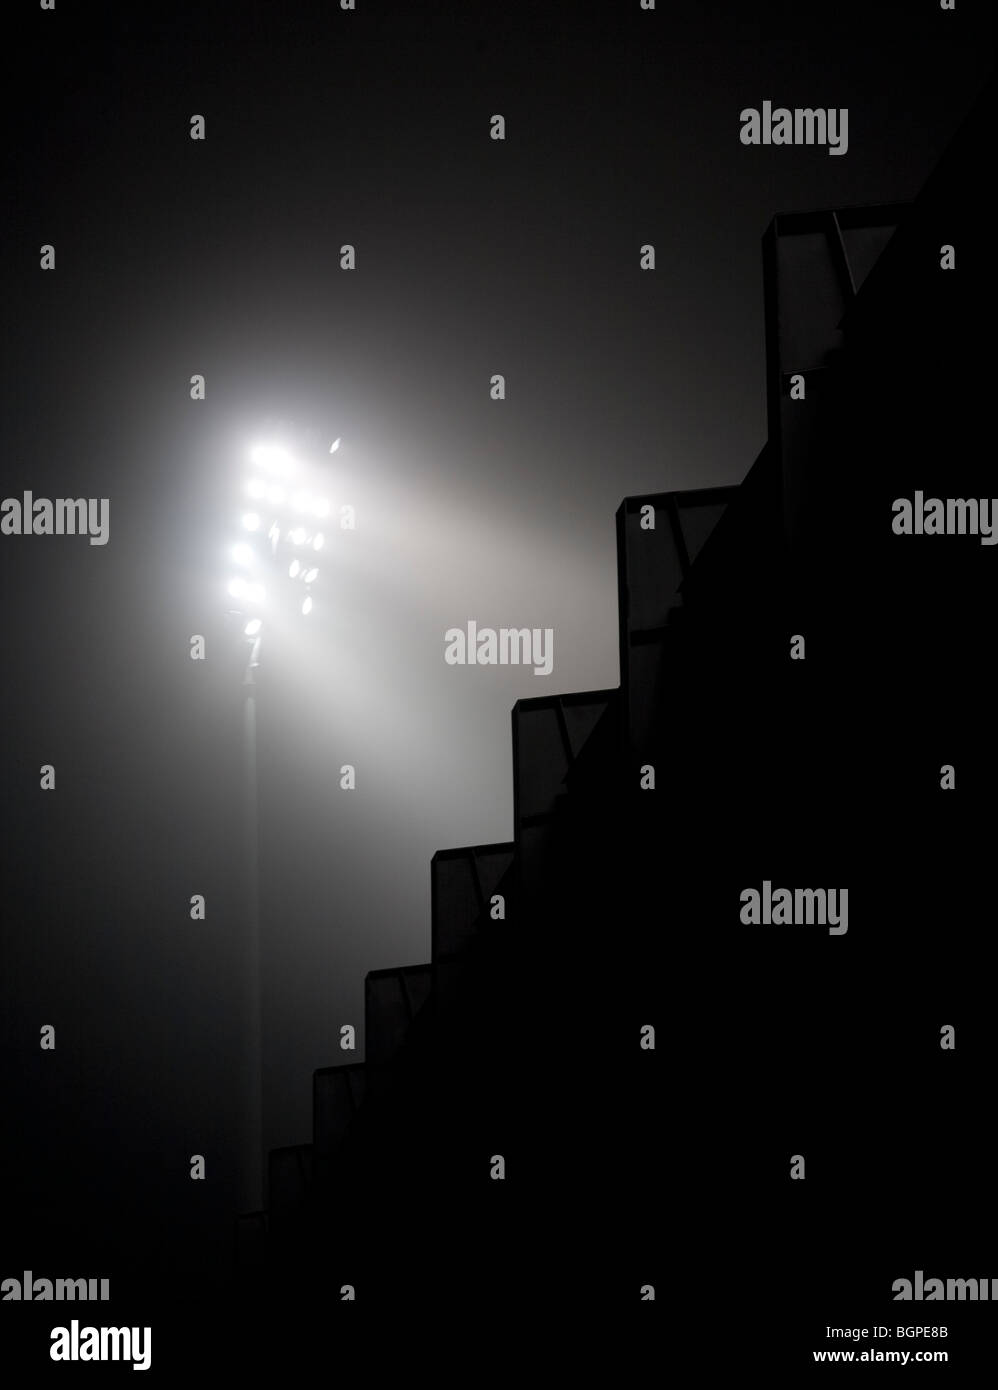 Stadium lights glowing through fog at night . Jagged edge of the stand at darkness . - Stock Image